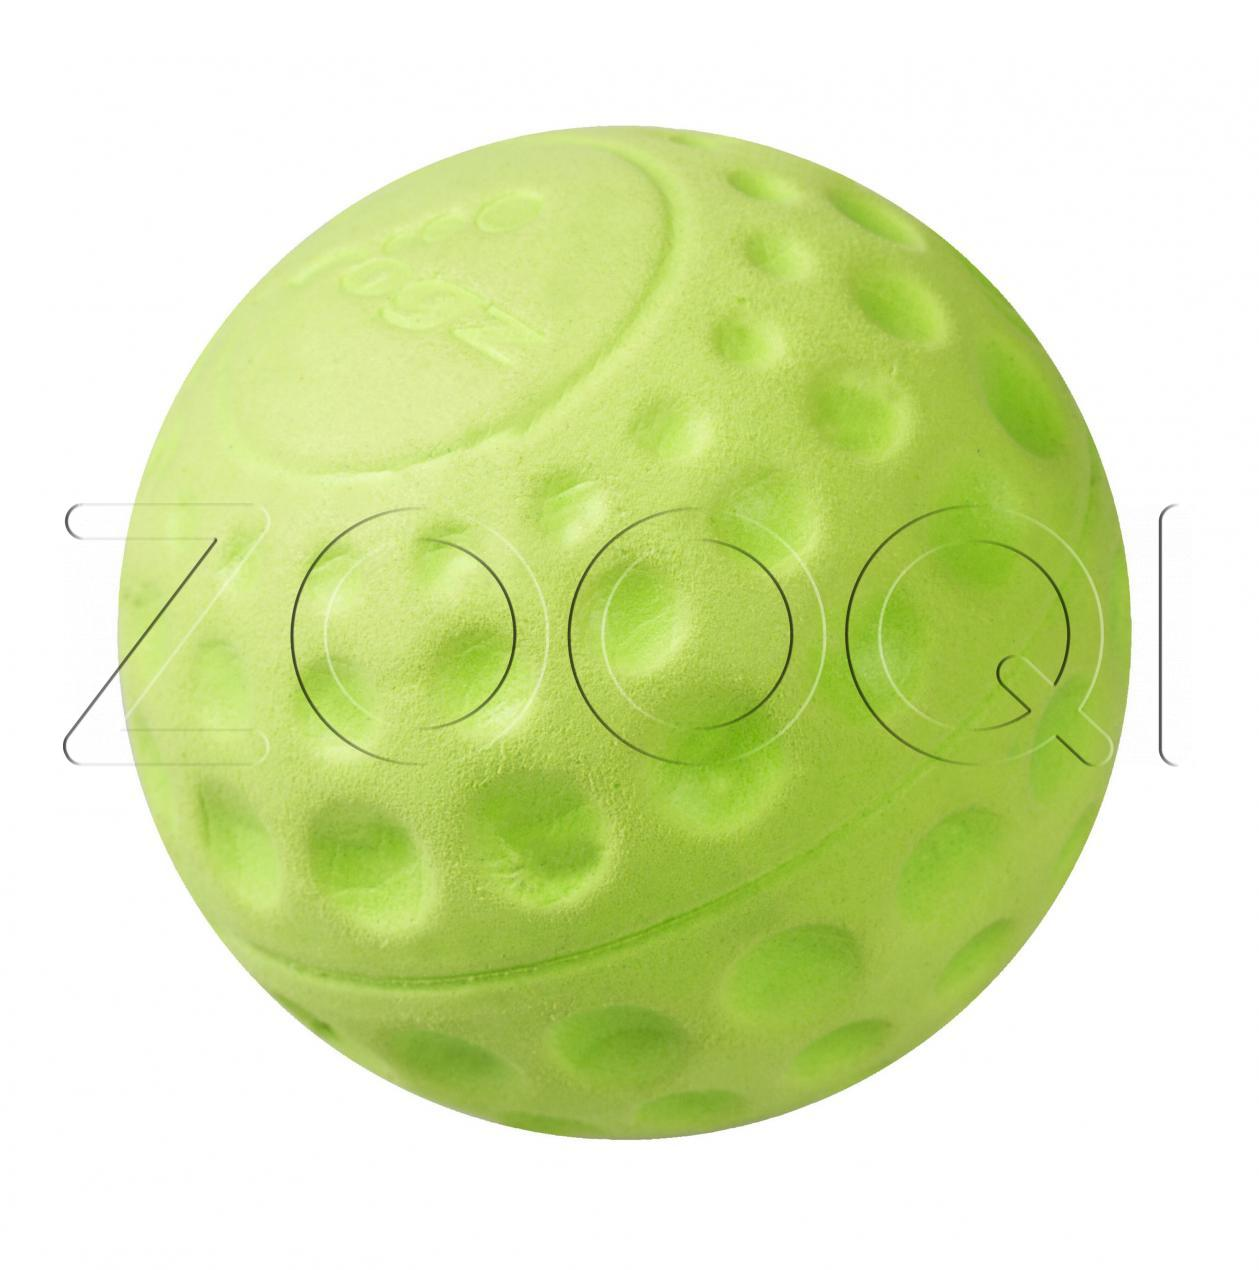 Игрушка мячик Rogz Asteroidz Large Lime (диаметр 7,8 см), материал SEBS